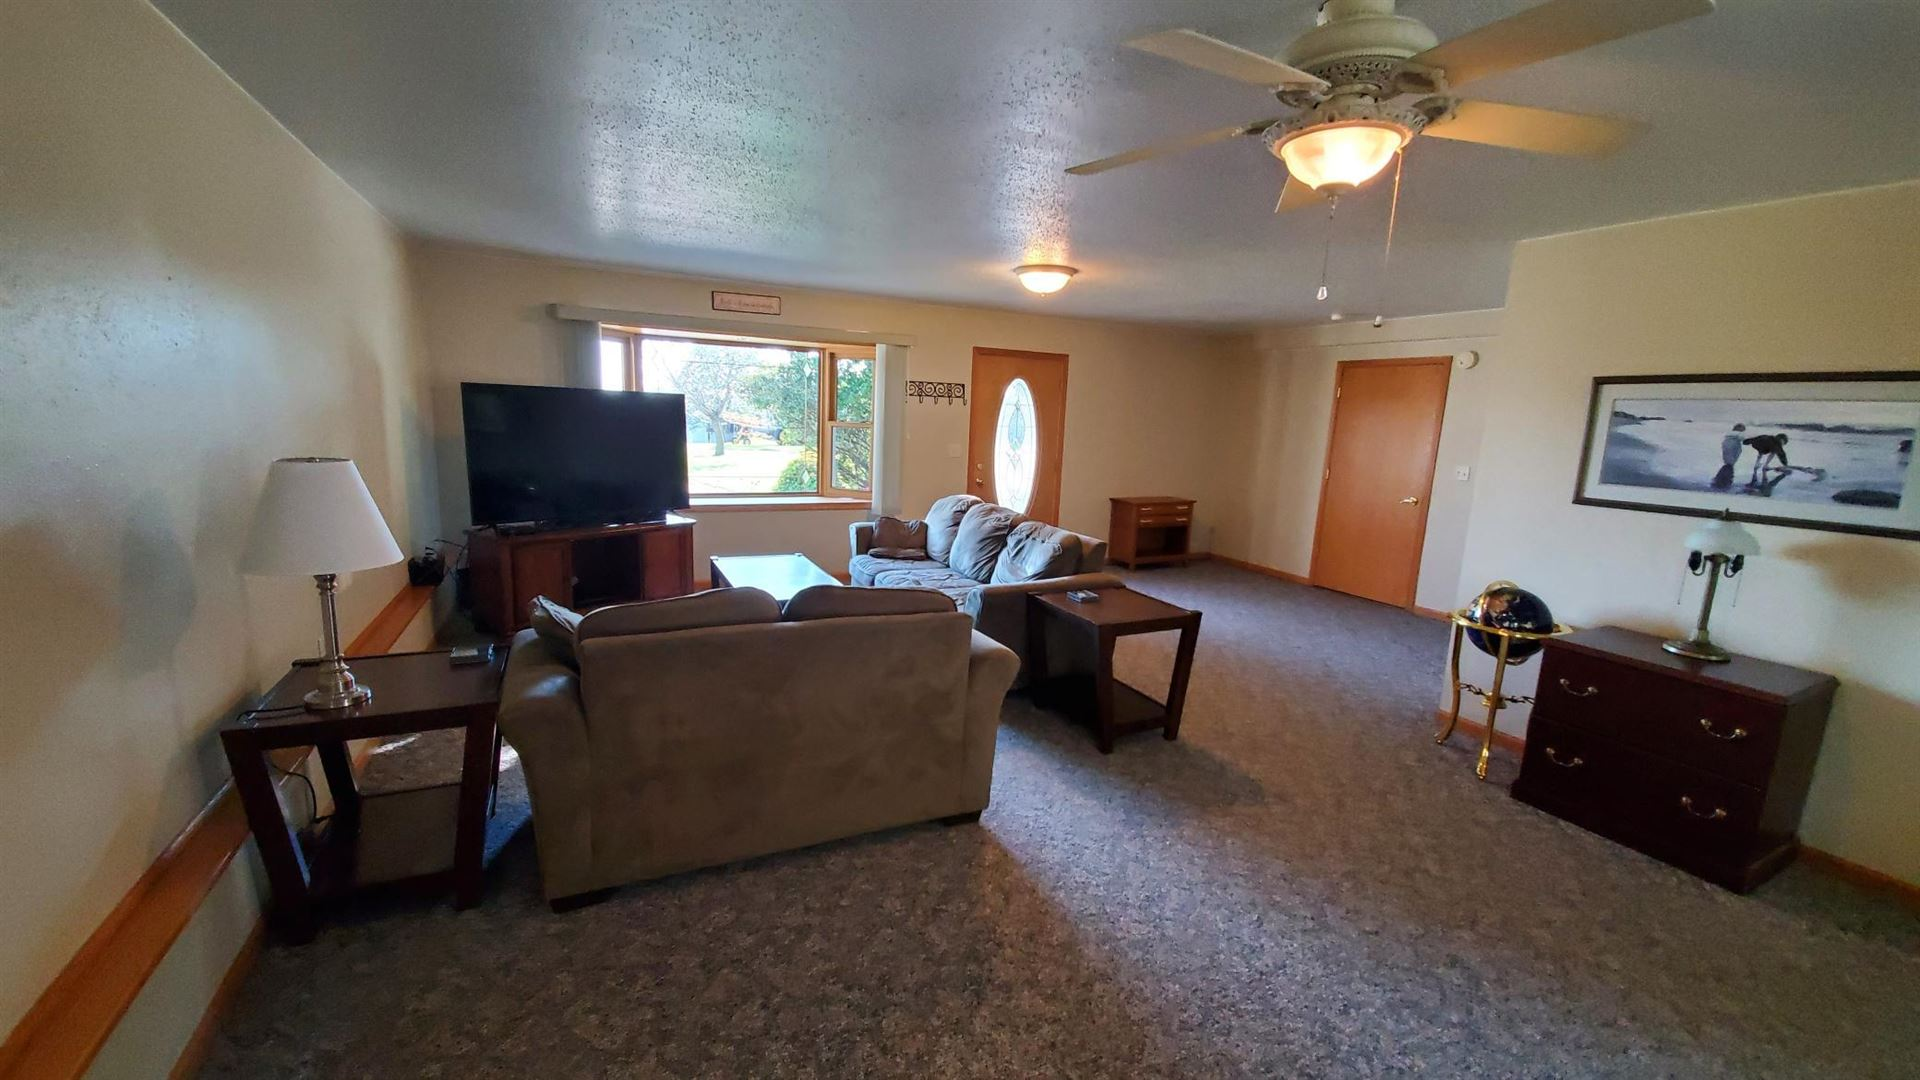 Photo of 4530 County 3, Brownsville, MN 55919 (MLS # 6102228)